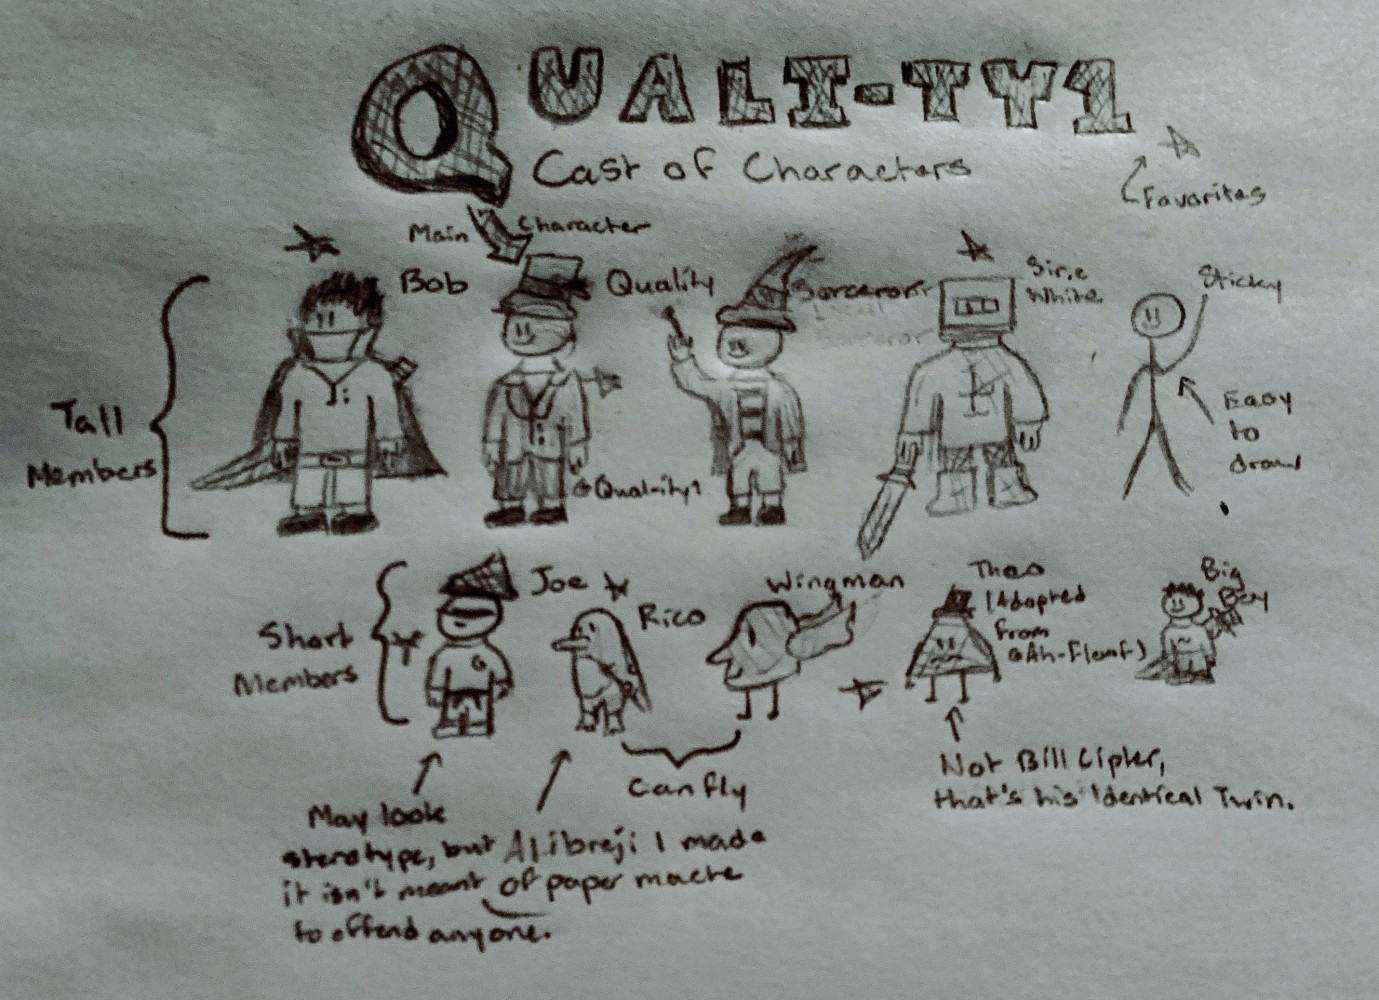 main-image-Quali-ty1 - Characters uploaded by Quali-ty1